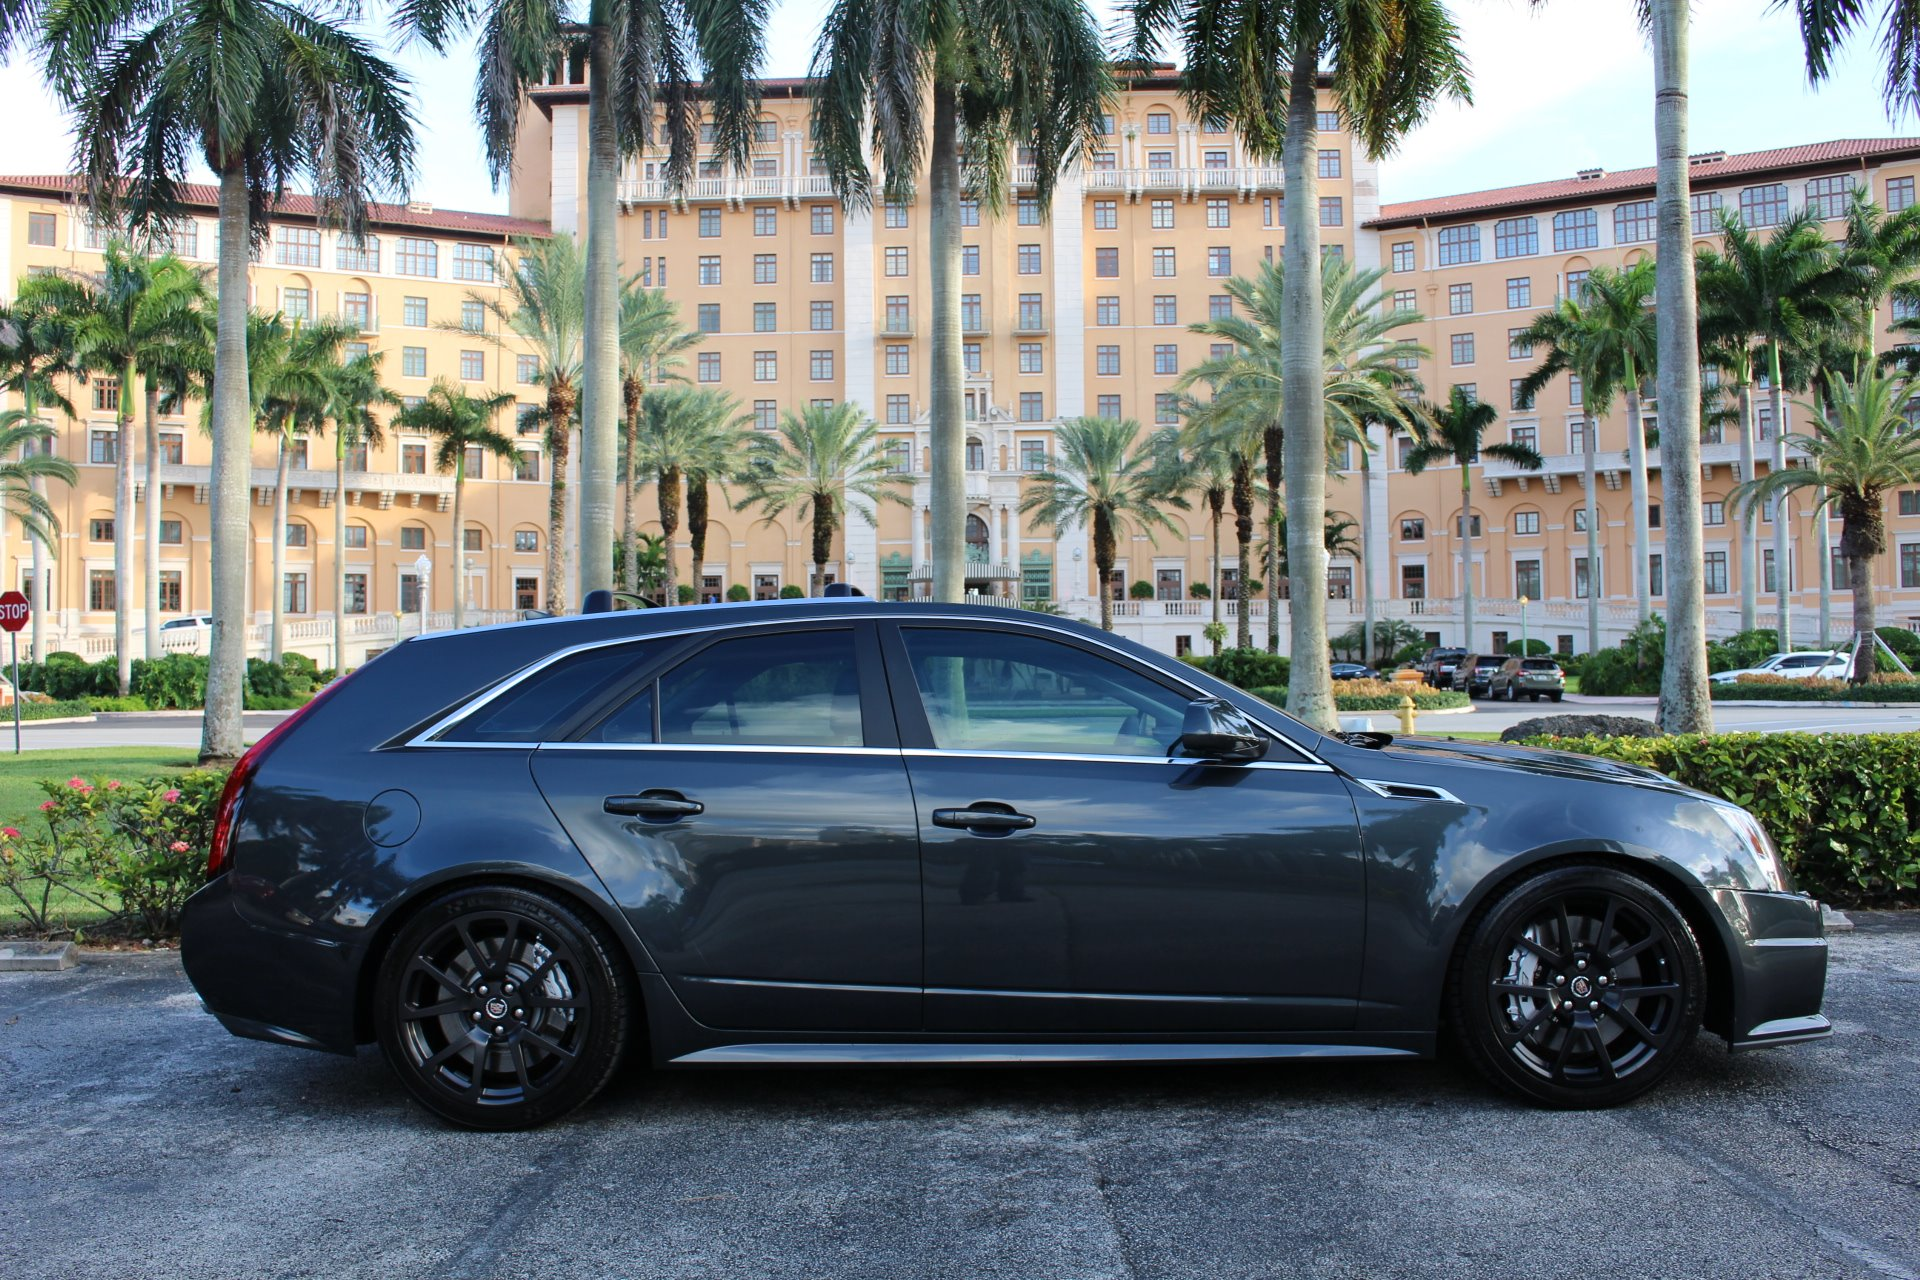 Used 2014 Cadillac CTS-V for sale Sold at The Gables Sports Cars in Miami FL 33146 1